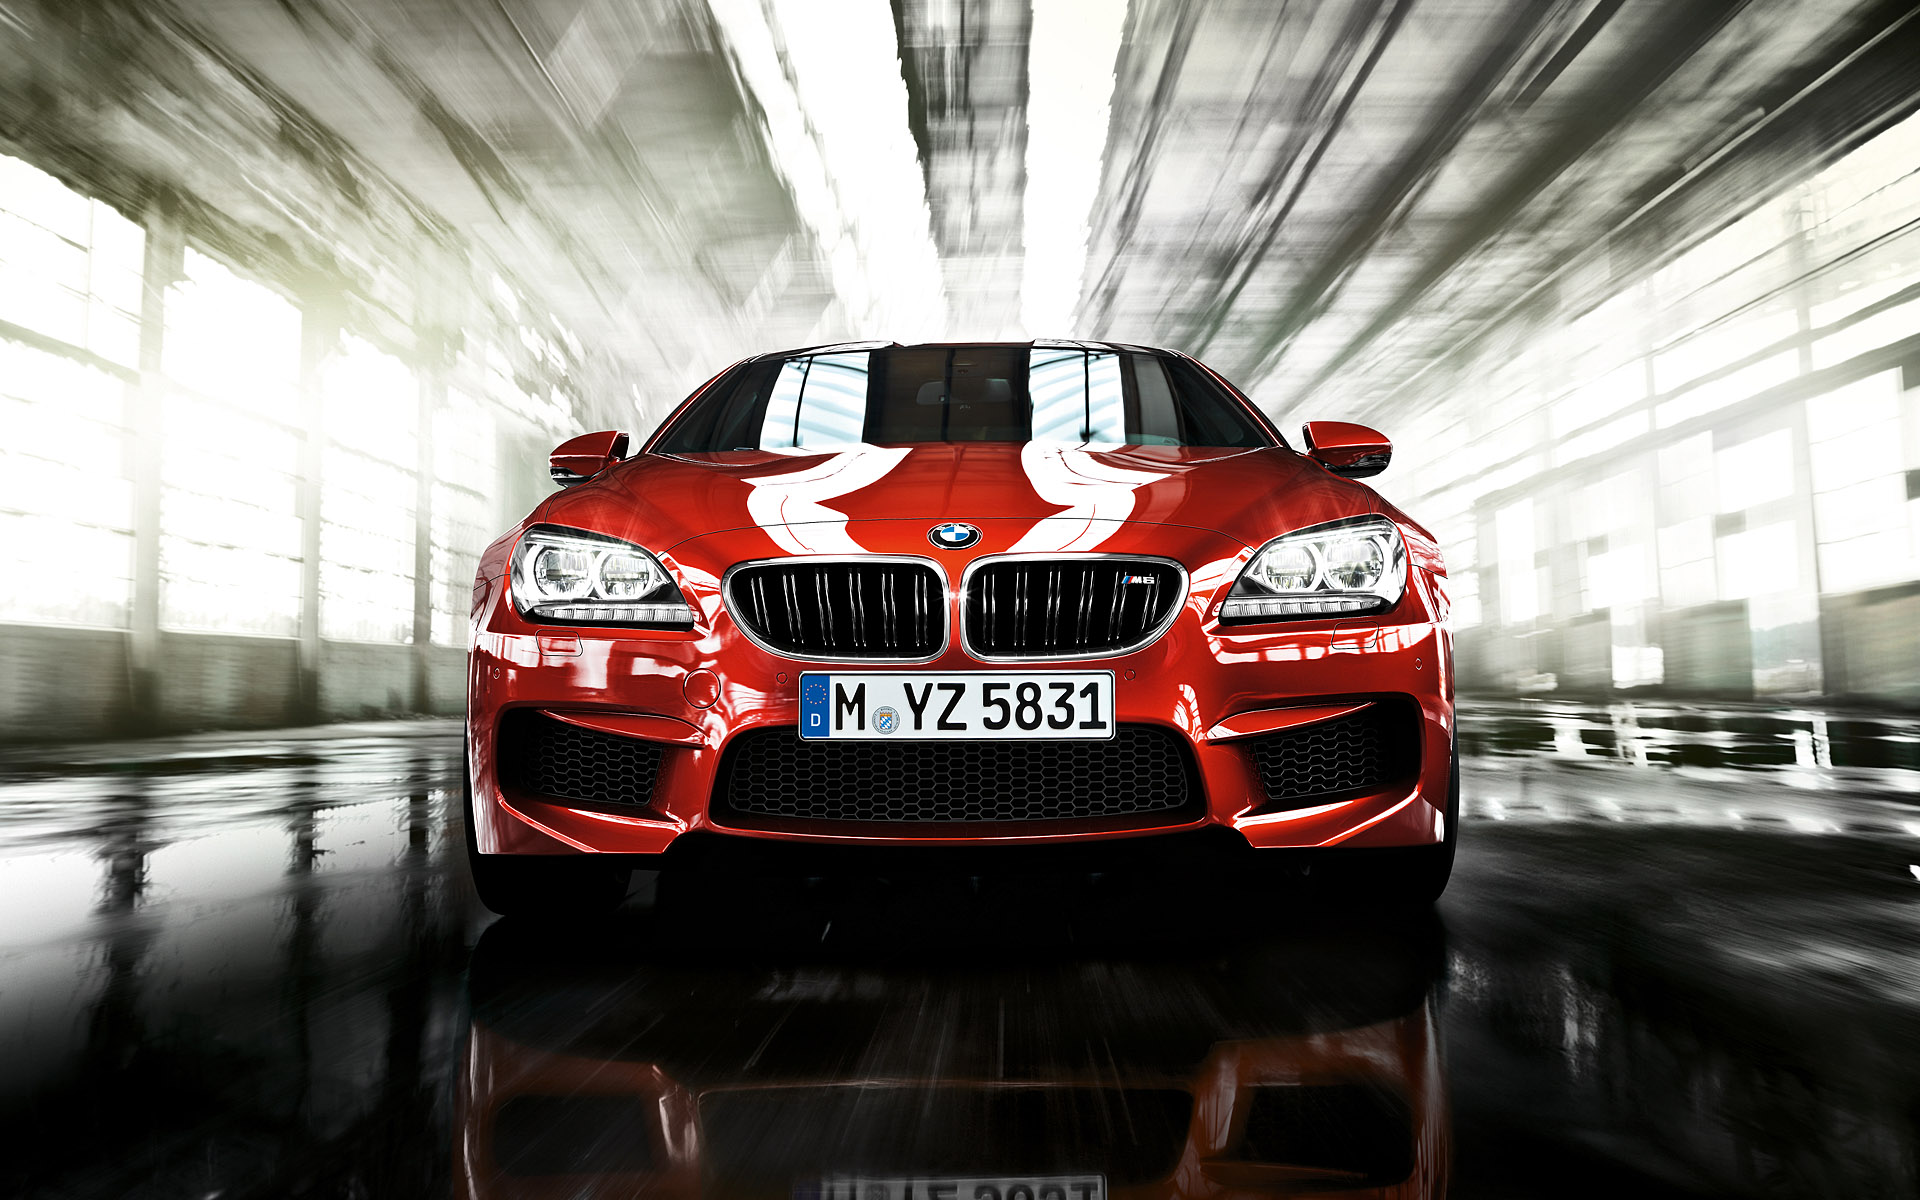 stunning new f12 f13 m6 wallpapers BMW 335I Wallpaper check on the latest bmw news